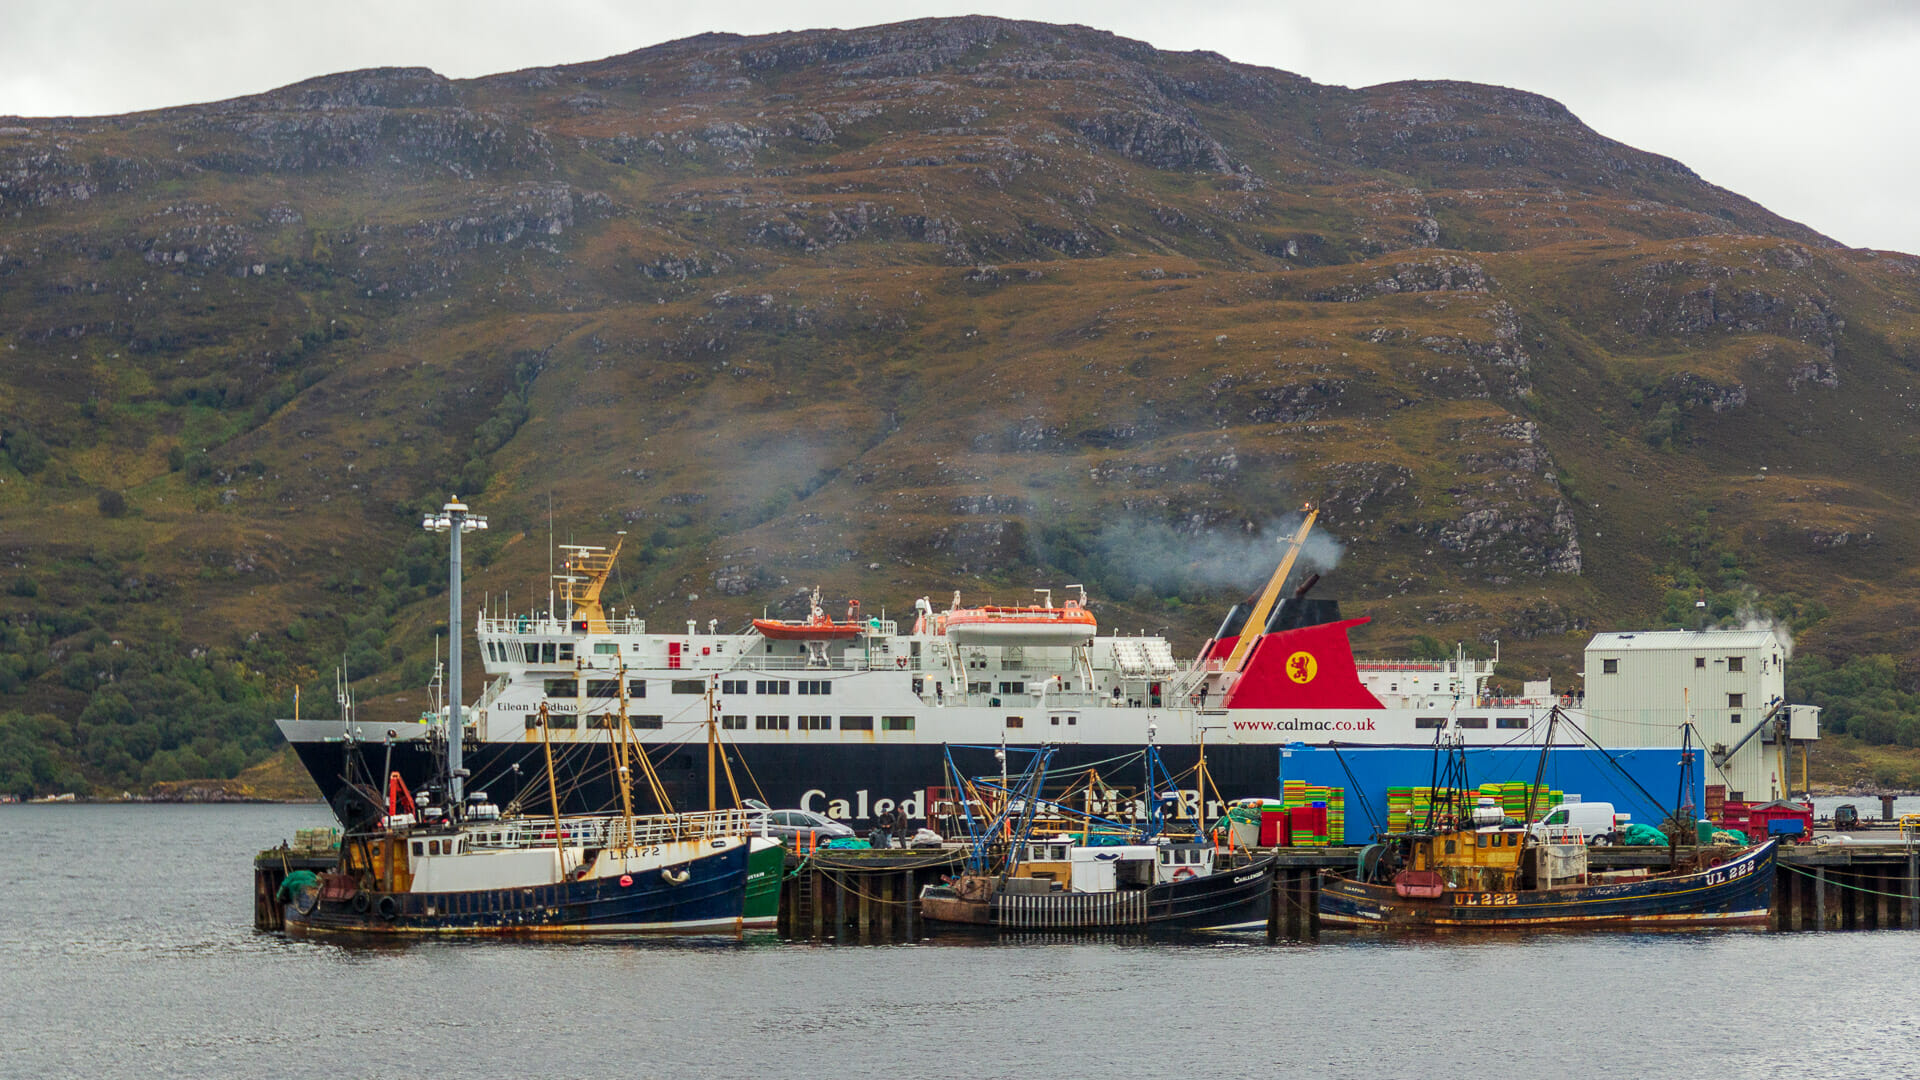 Die MV Isle of Lewis in Ullapool